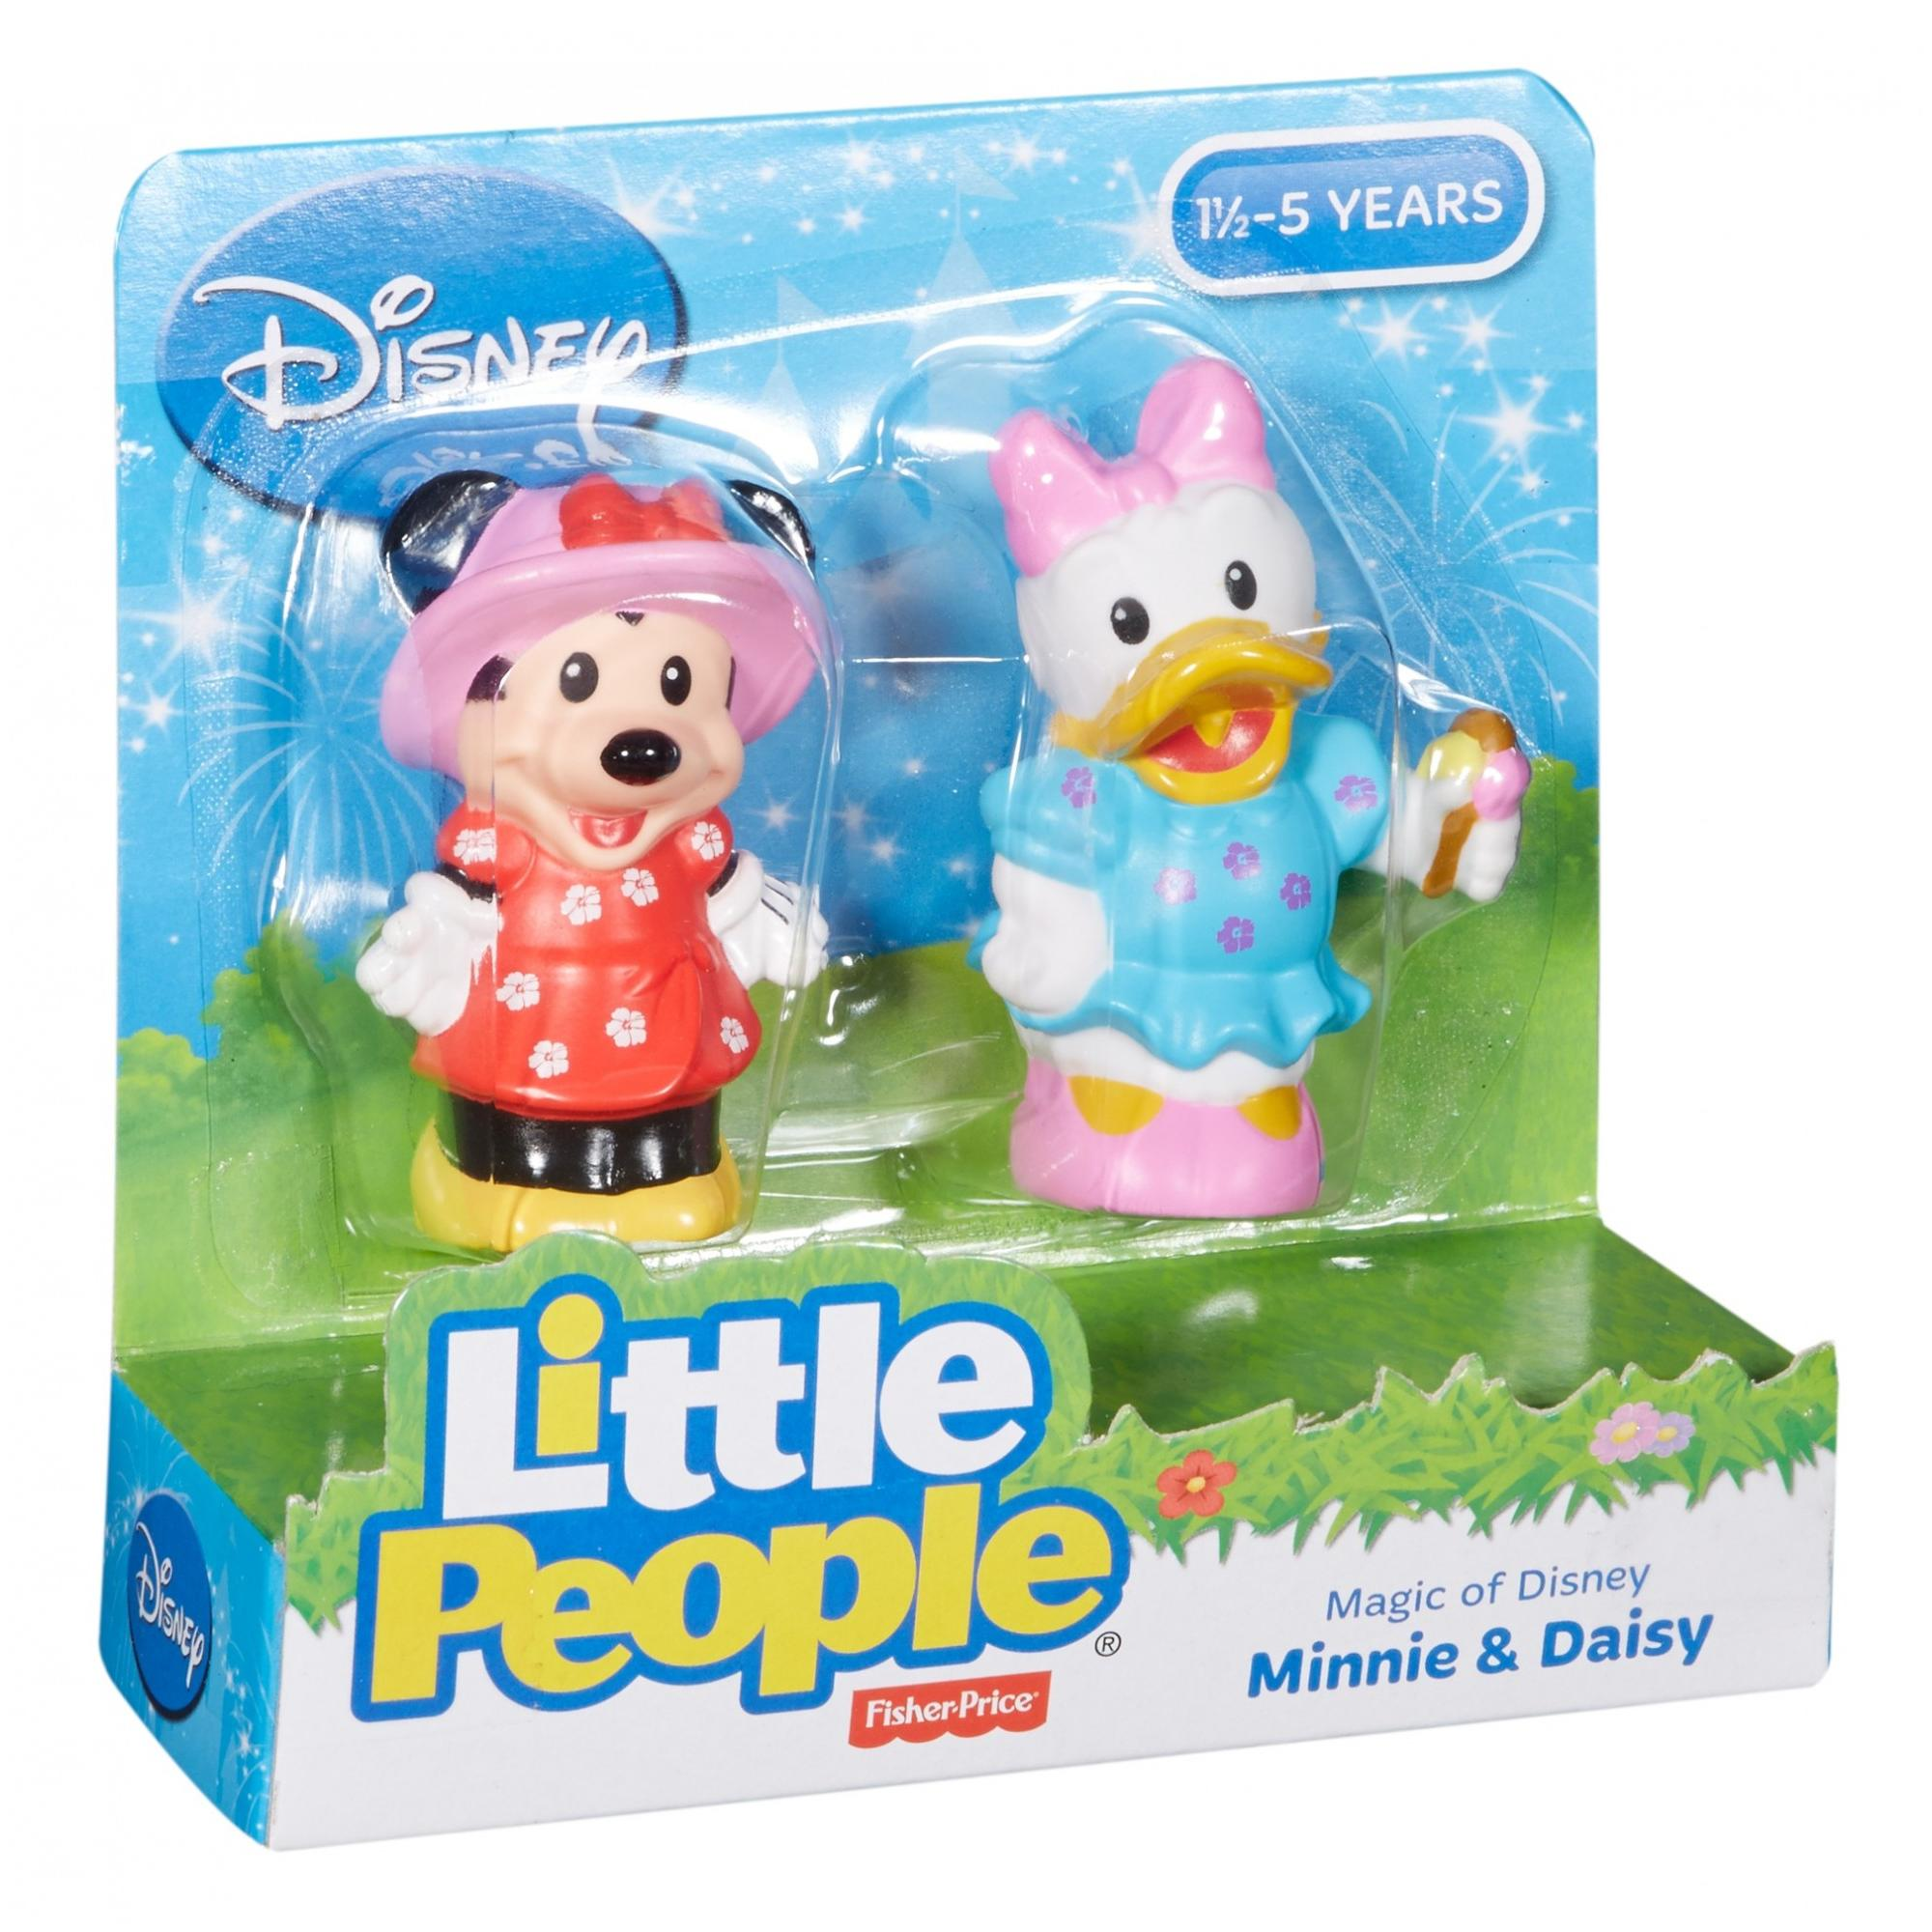 Magic of Disney Minnie & Daisy Buddy Pack By Little People - Walmart.com